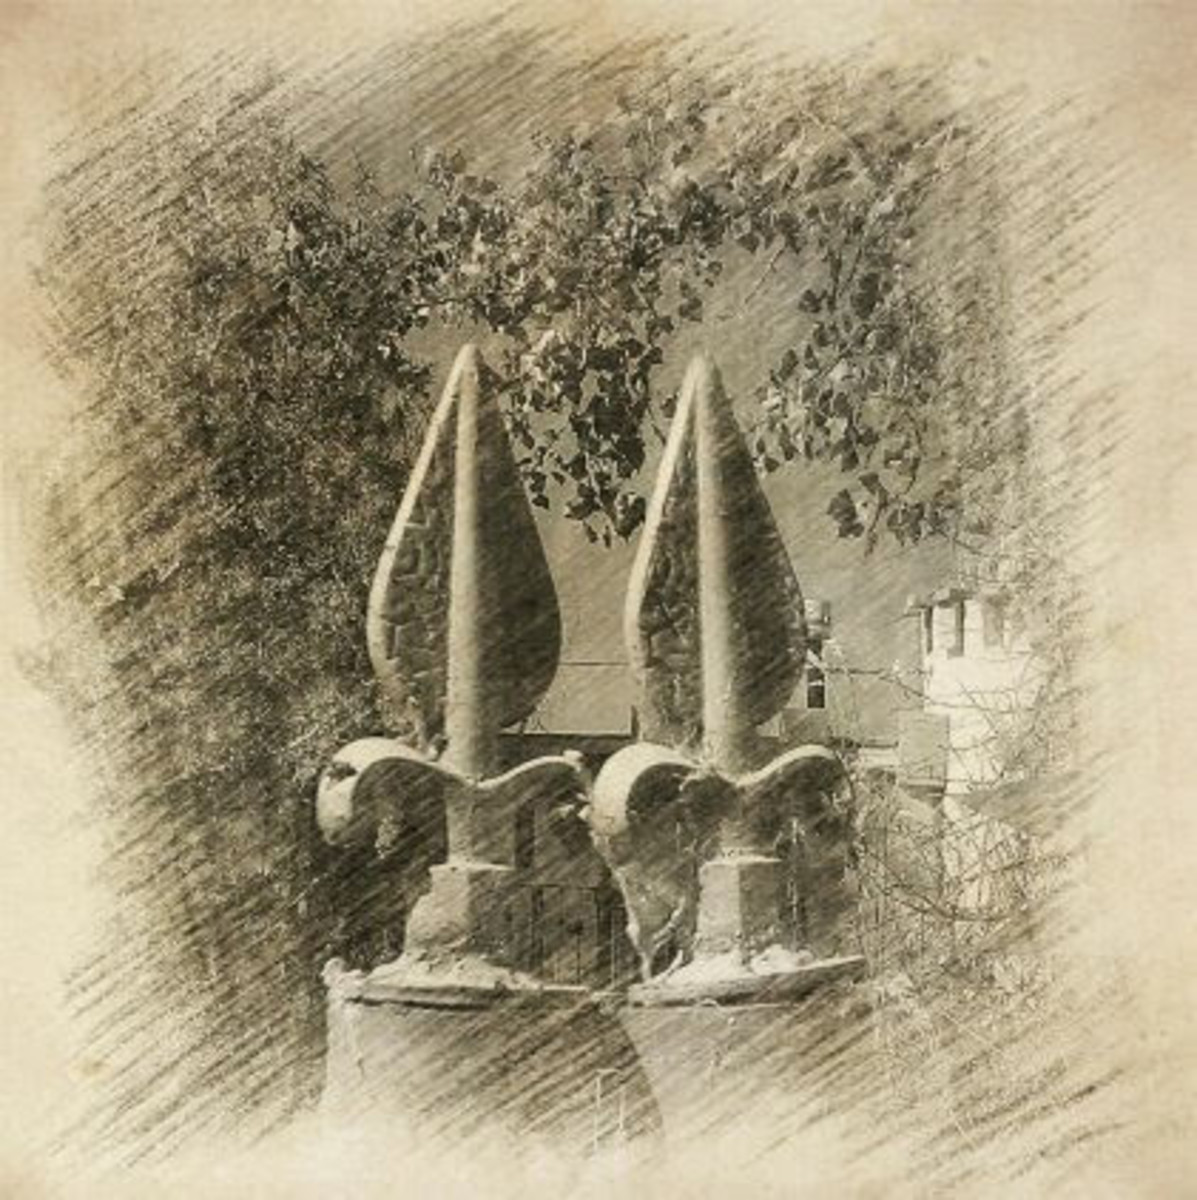 I've always wondered what the Urns of Haven, hold.